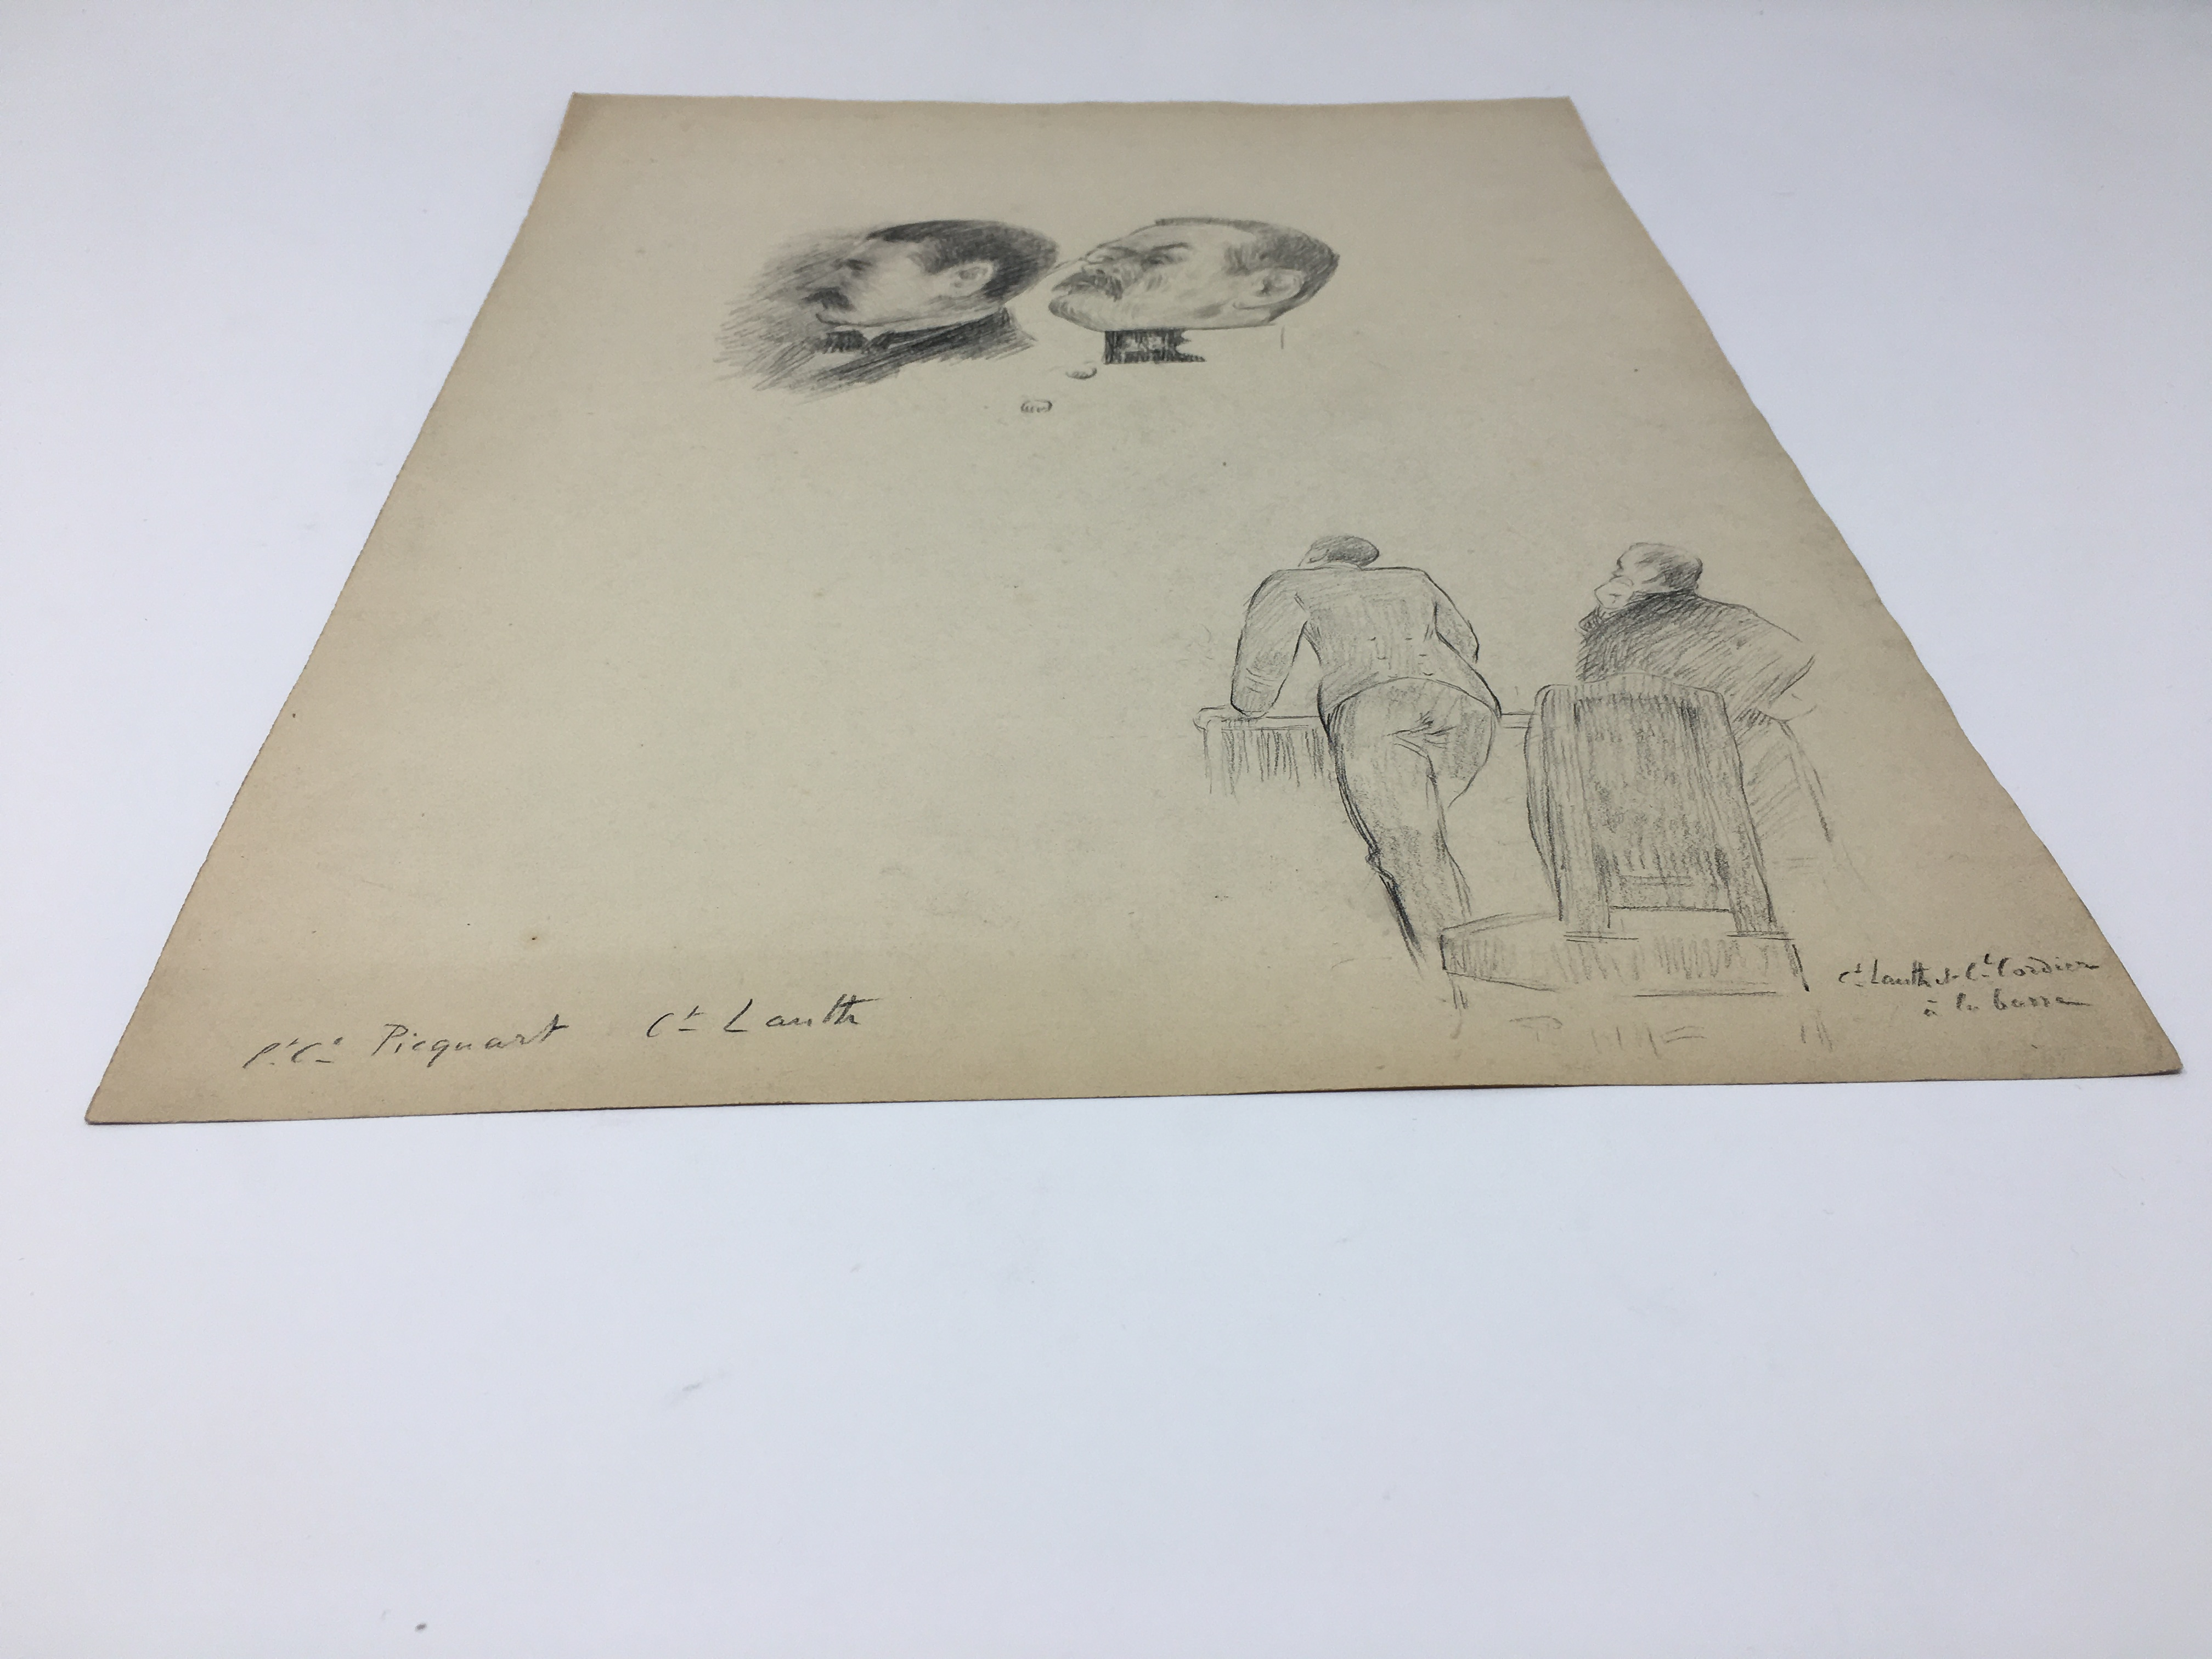 J'Accuse Newspaper, Emile Zola Quote, Signed Dreyfus Portrait, Rare Trial Drawings & Schwartzkoppen - Image 50 of 74